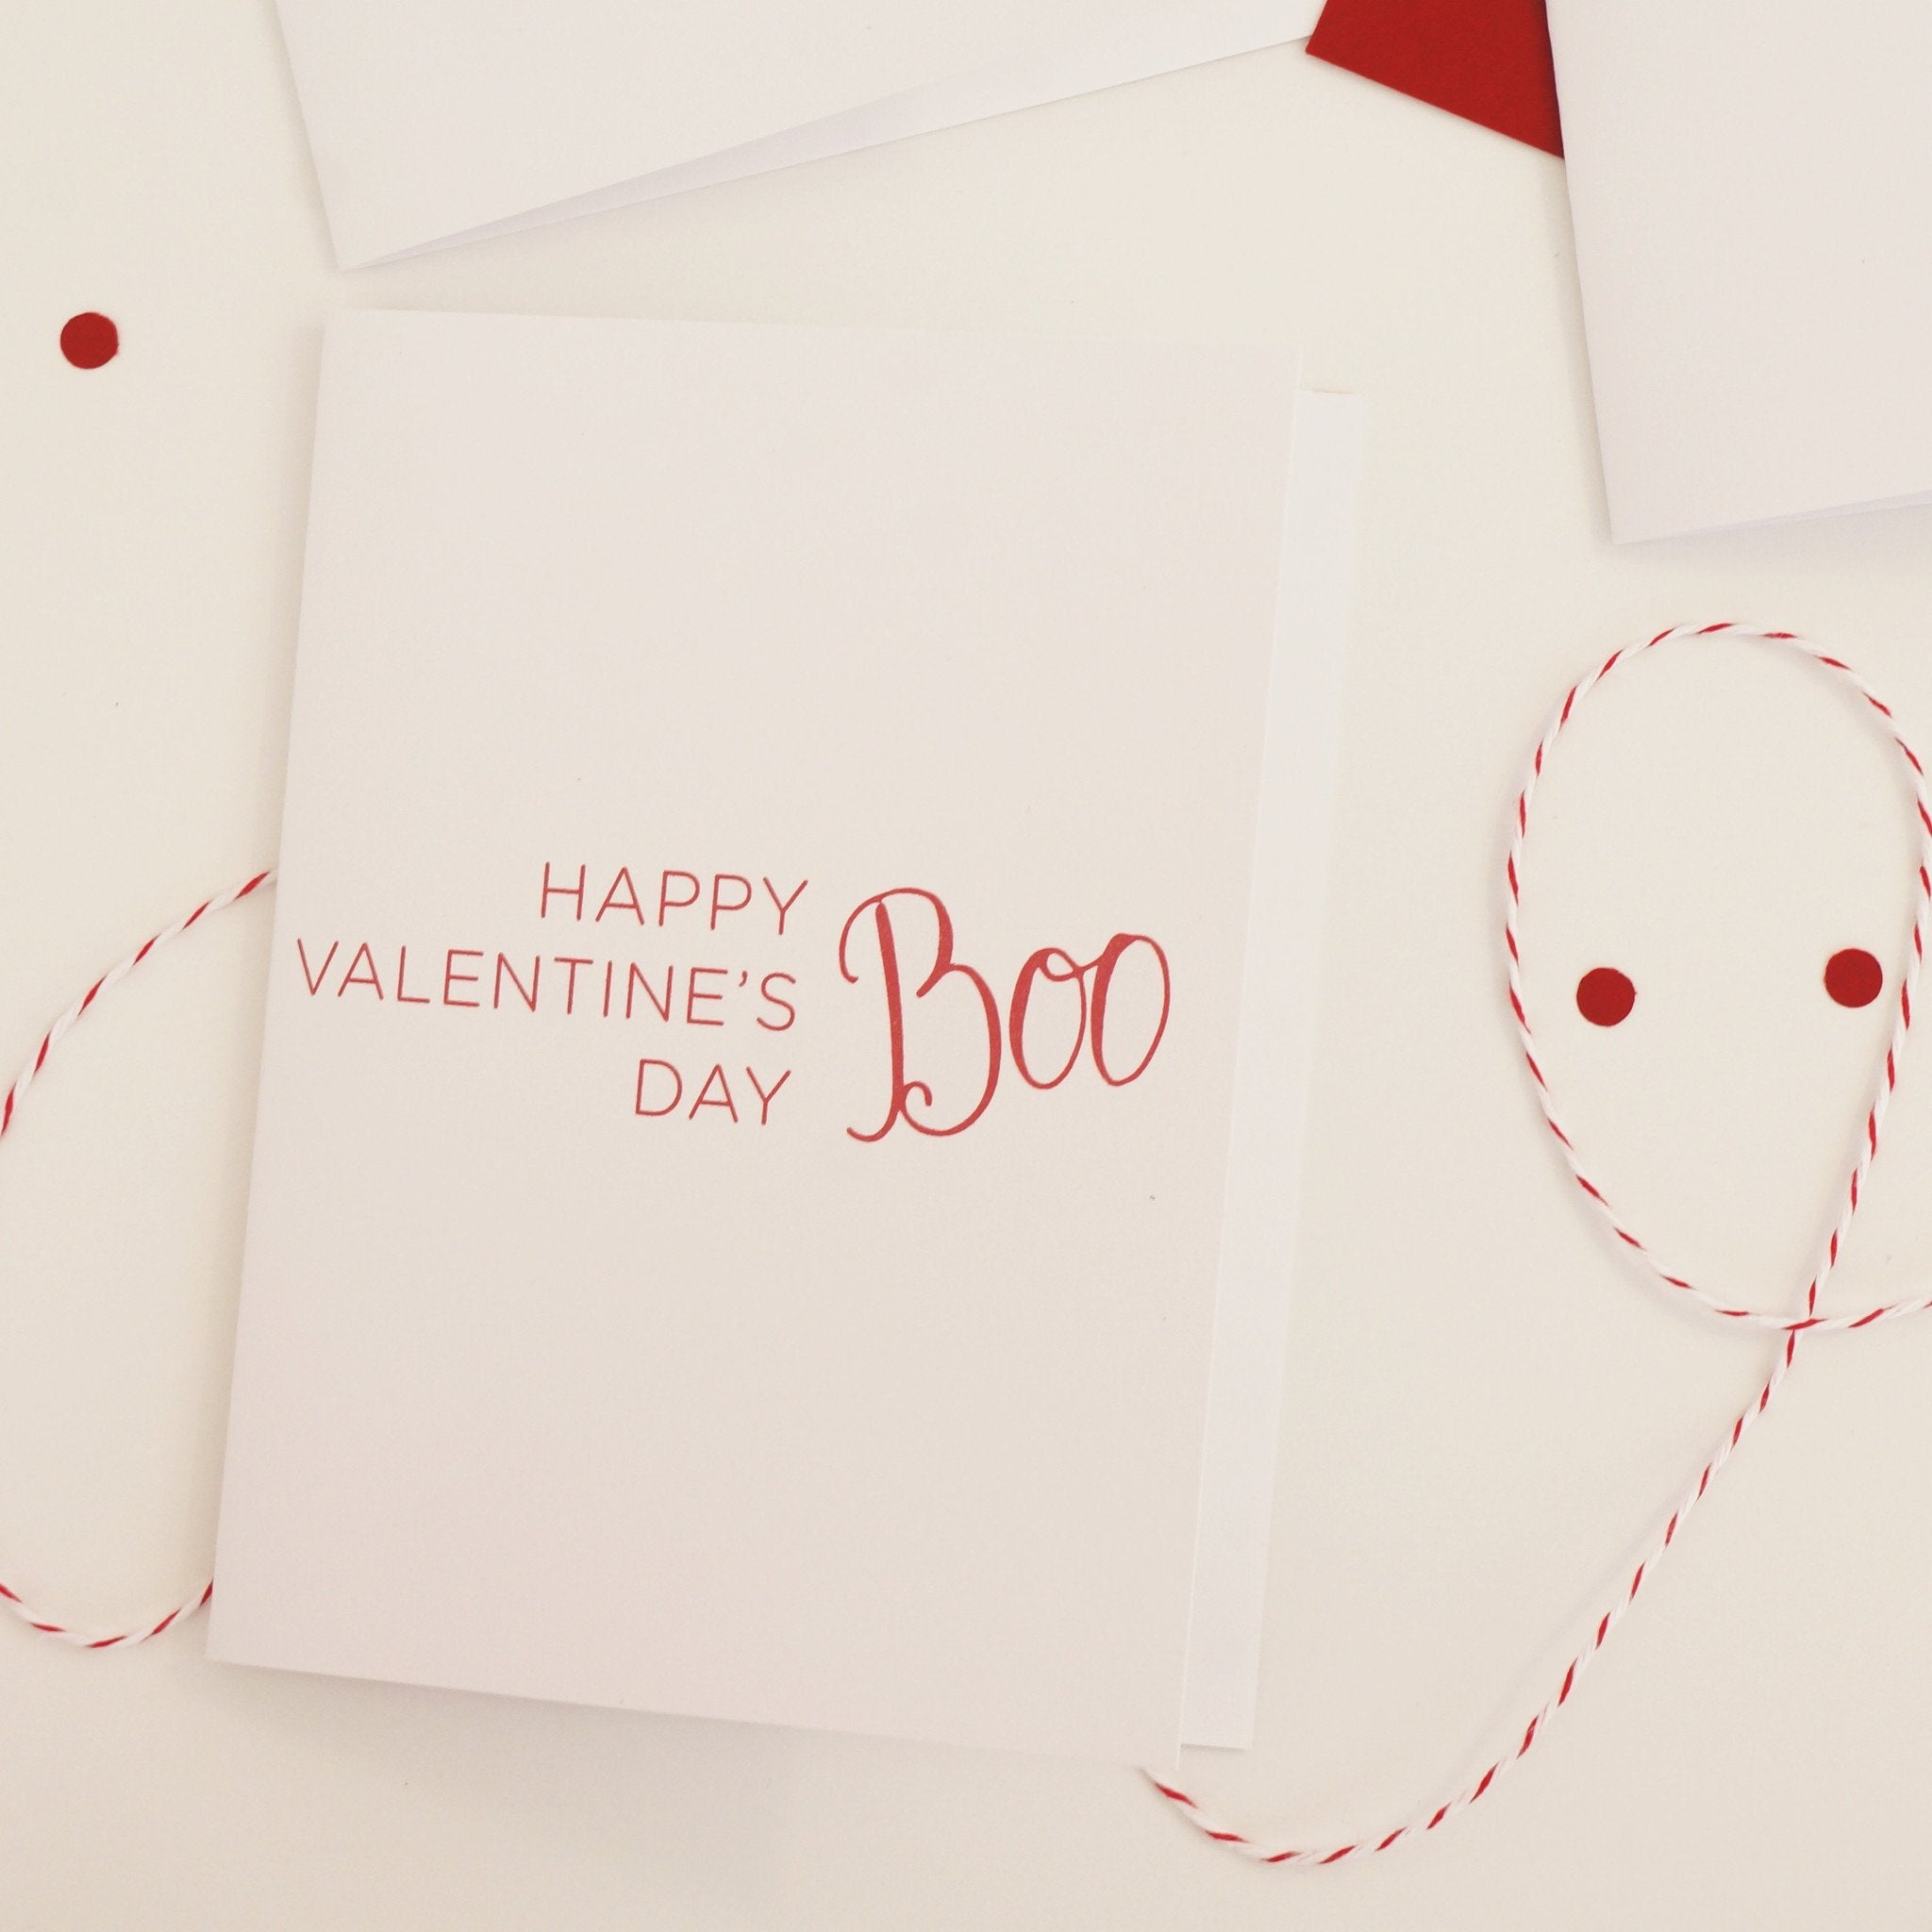 Happy Valentines Boo, Sweet Valentine's Day Card - shop greeting cards, handmade stationery, & wedding invitations by dodeline design - 1